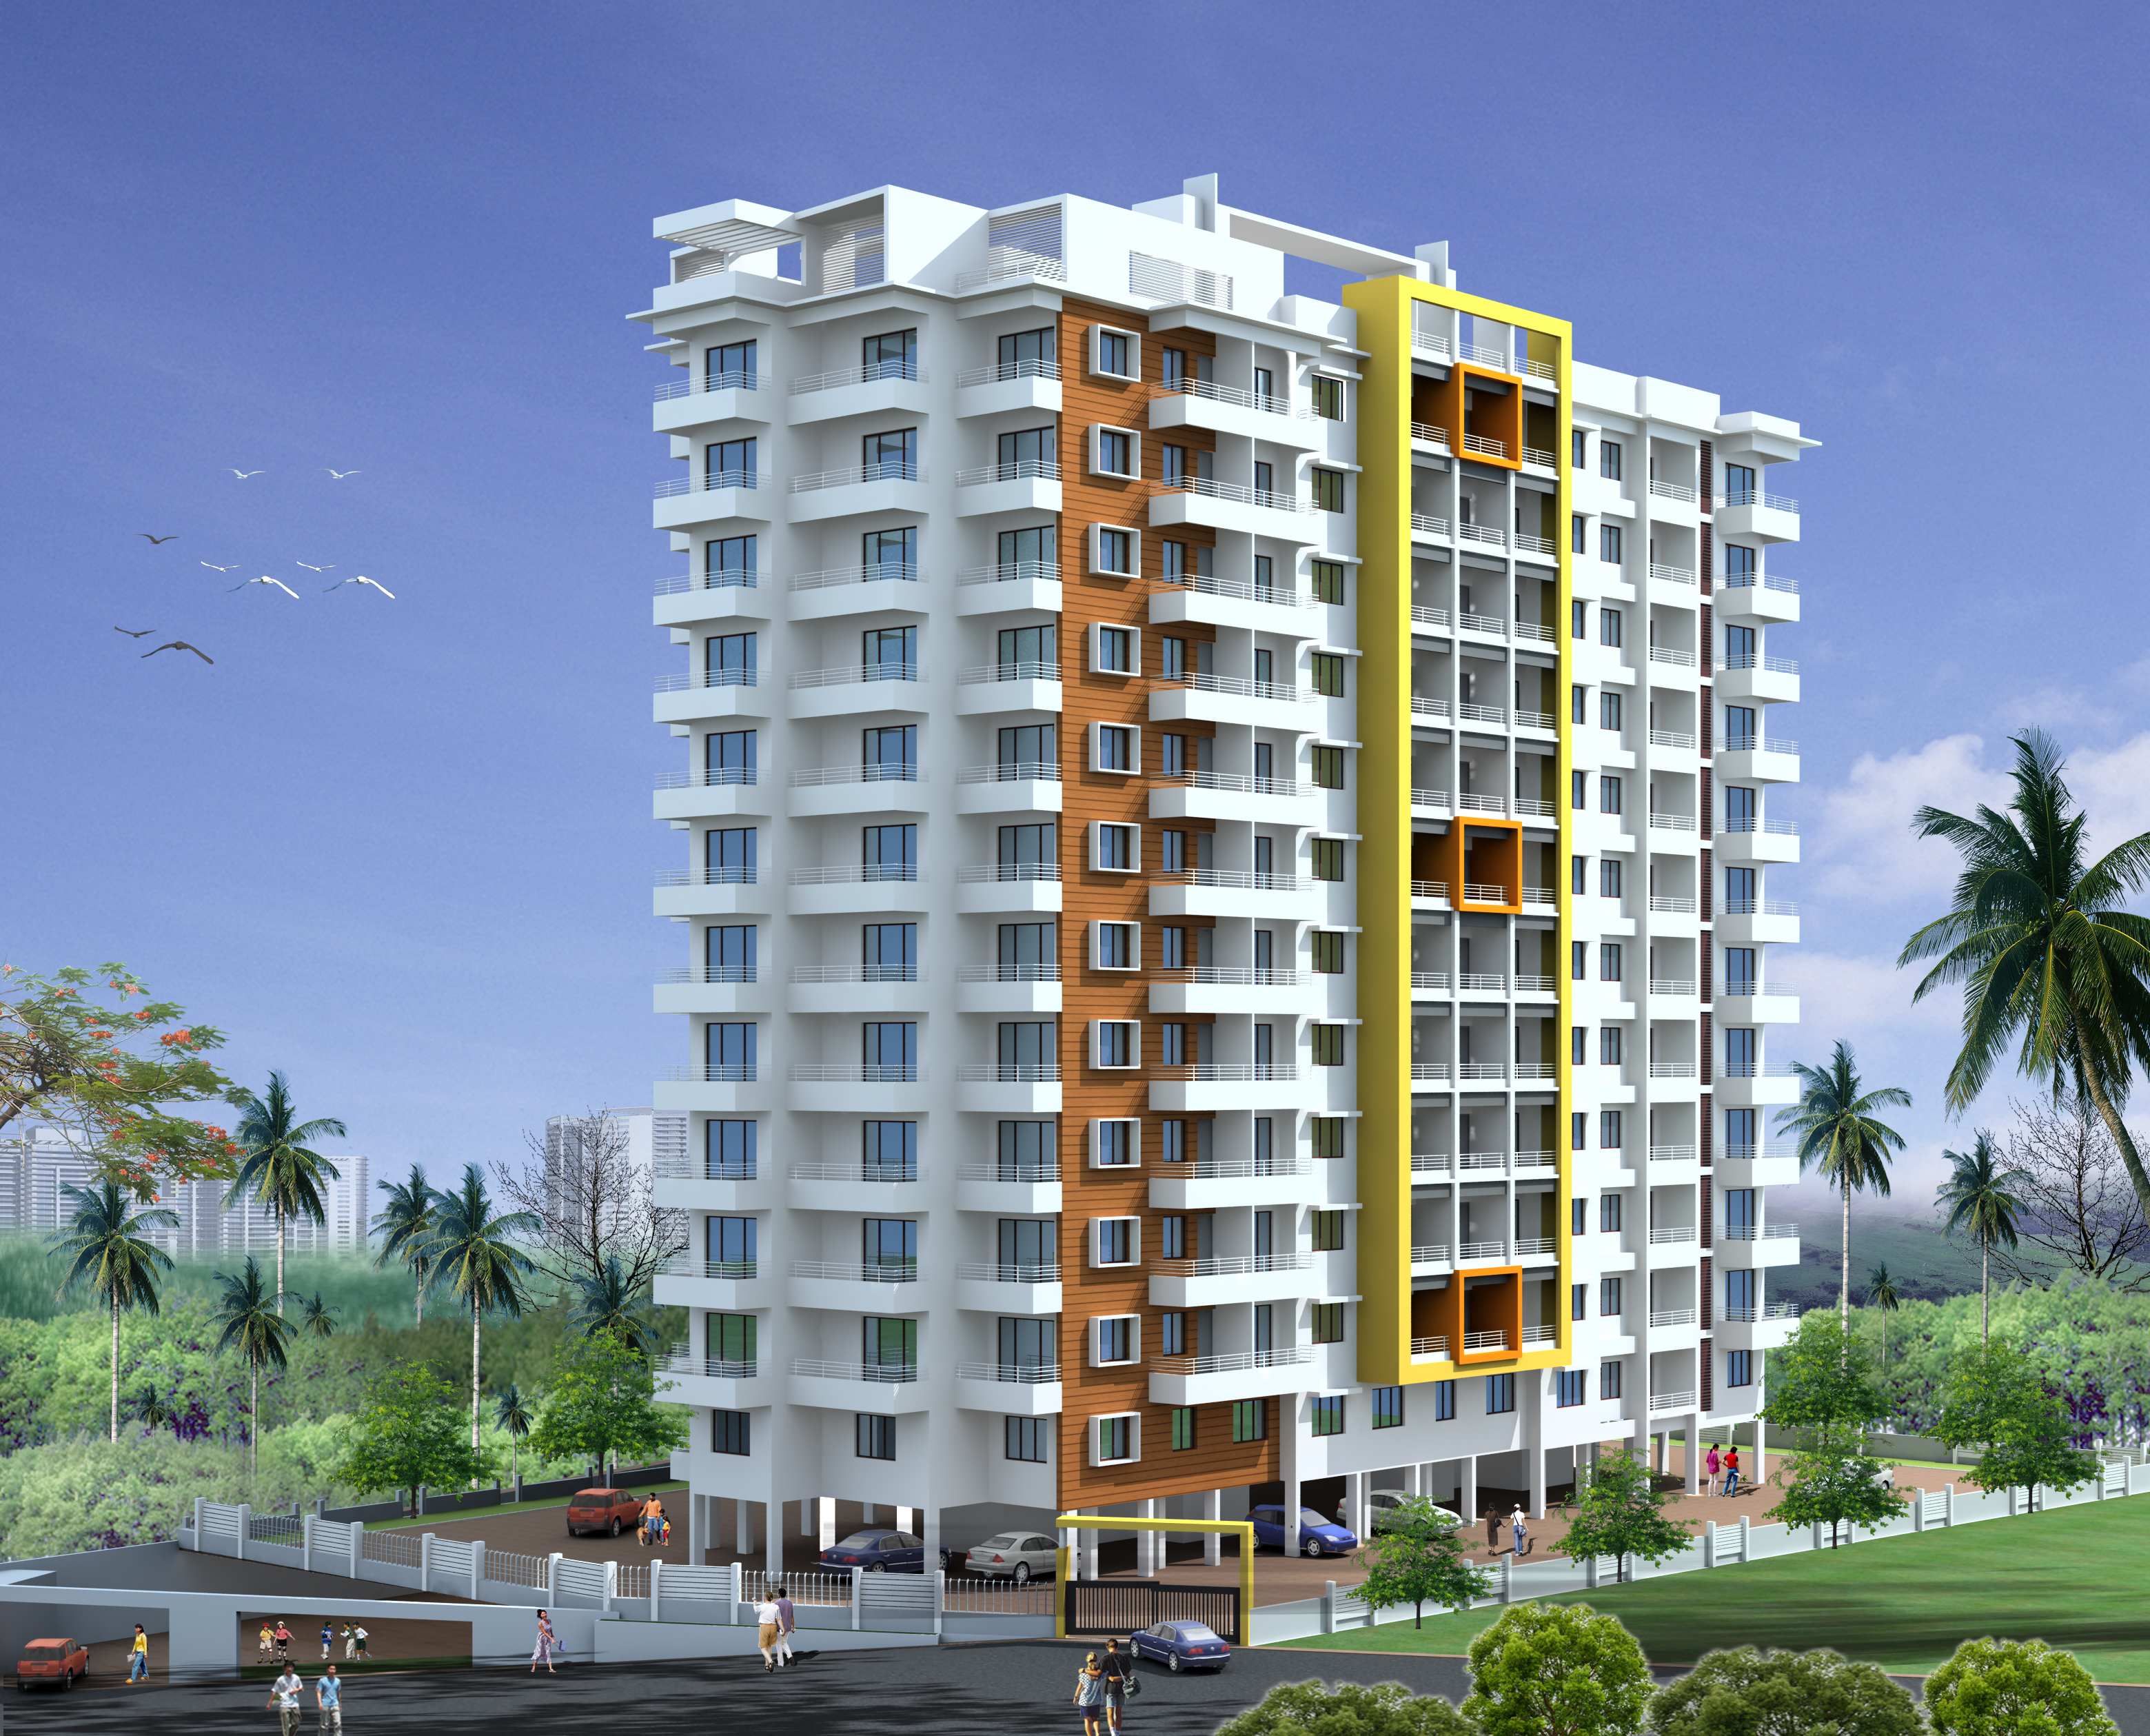 Divakar Constructions, Builders and Construction Company in